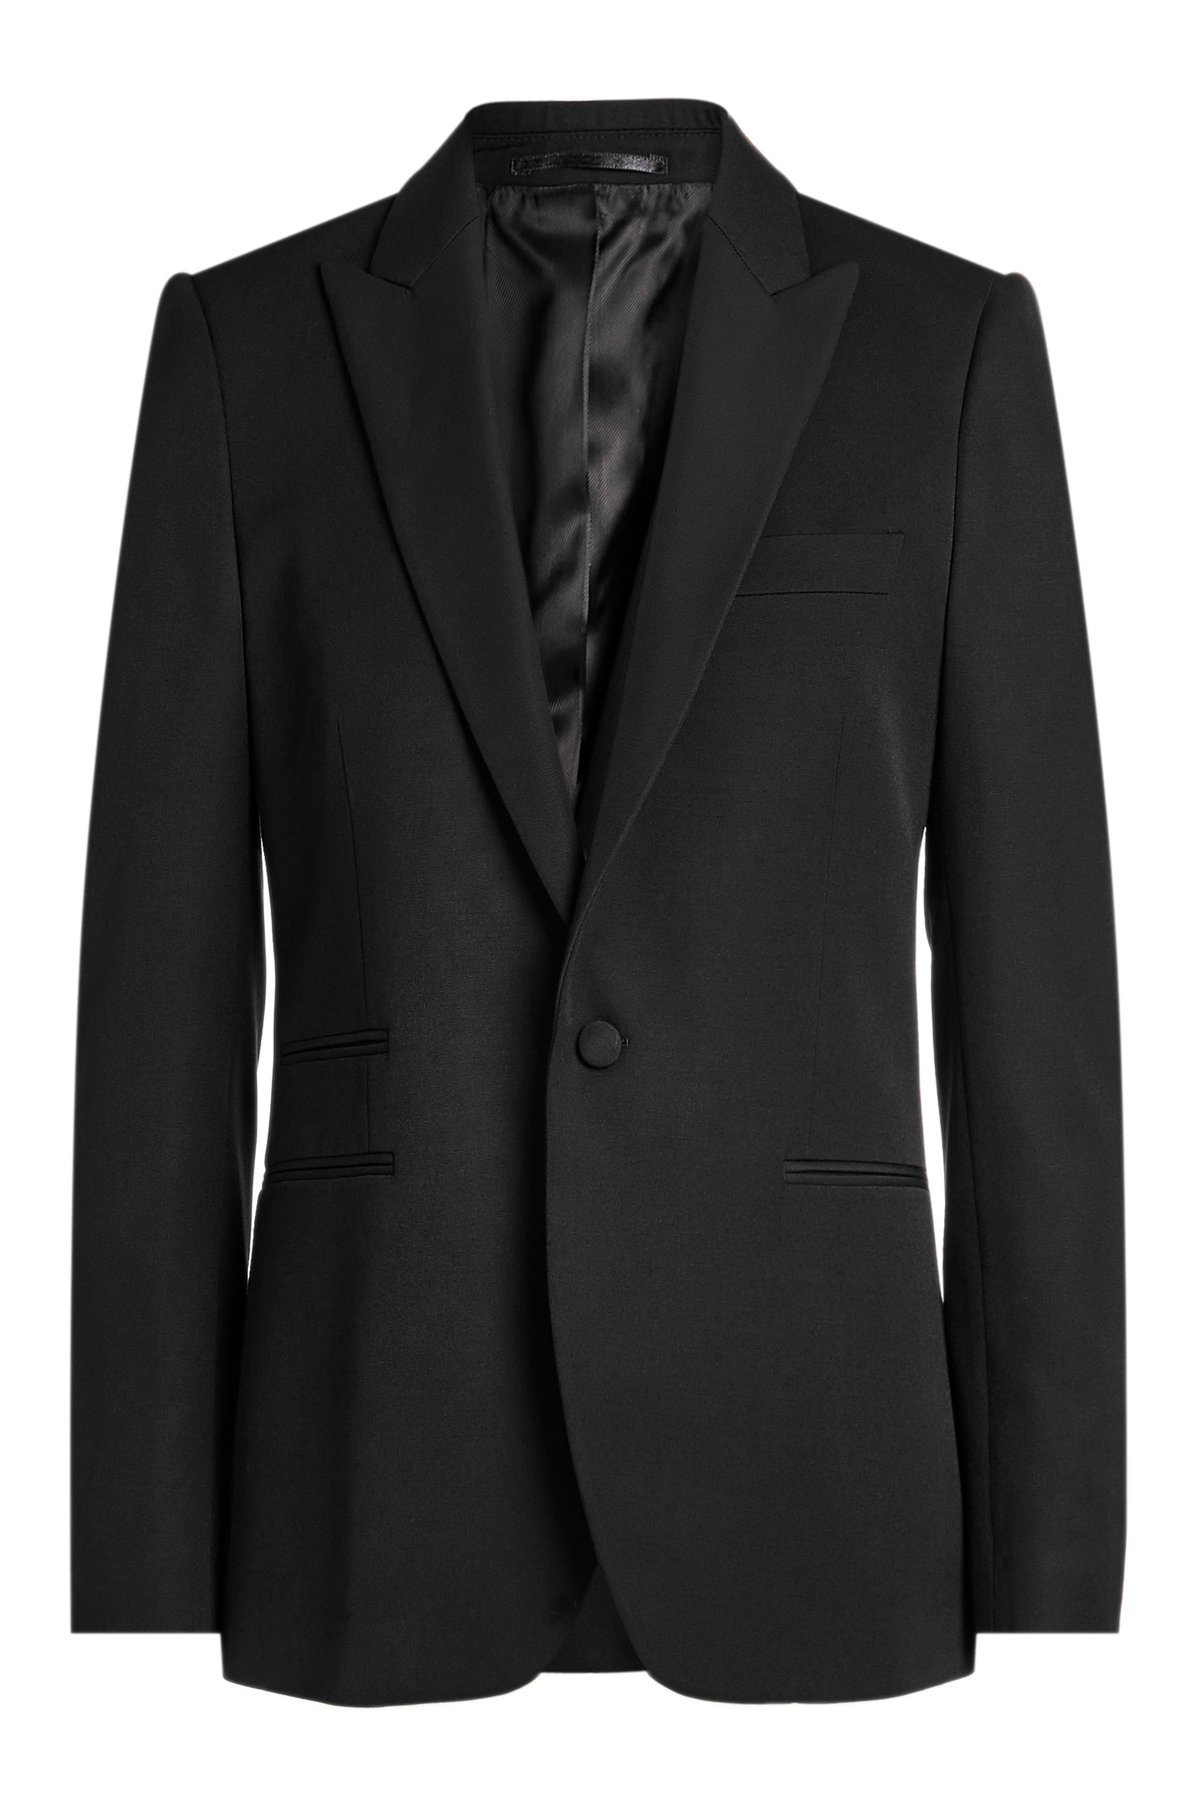 Tillman Peak Lapel Wool Jacket | STELLA MCCARTNEY